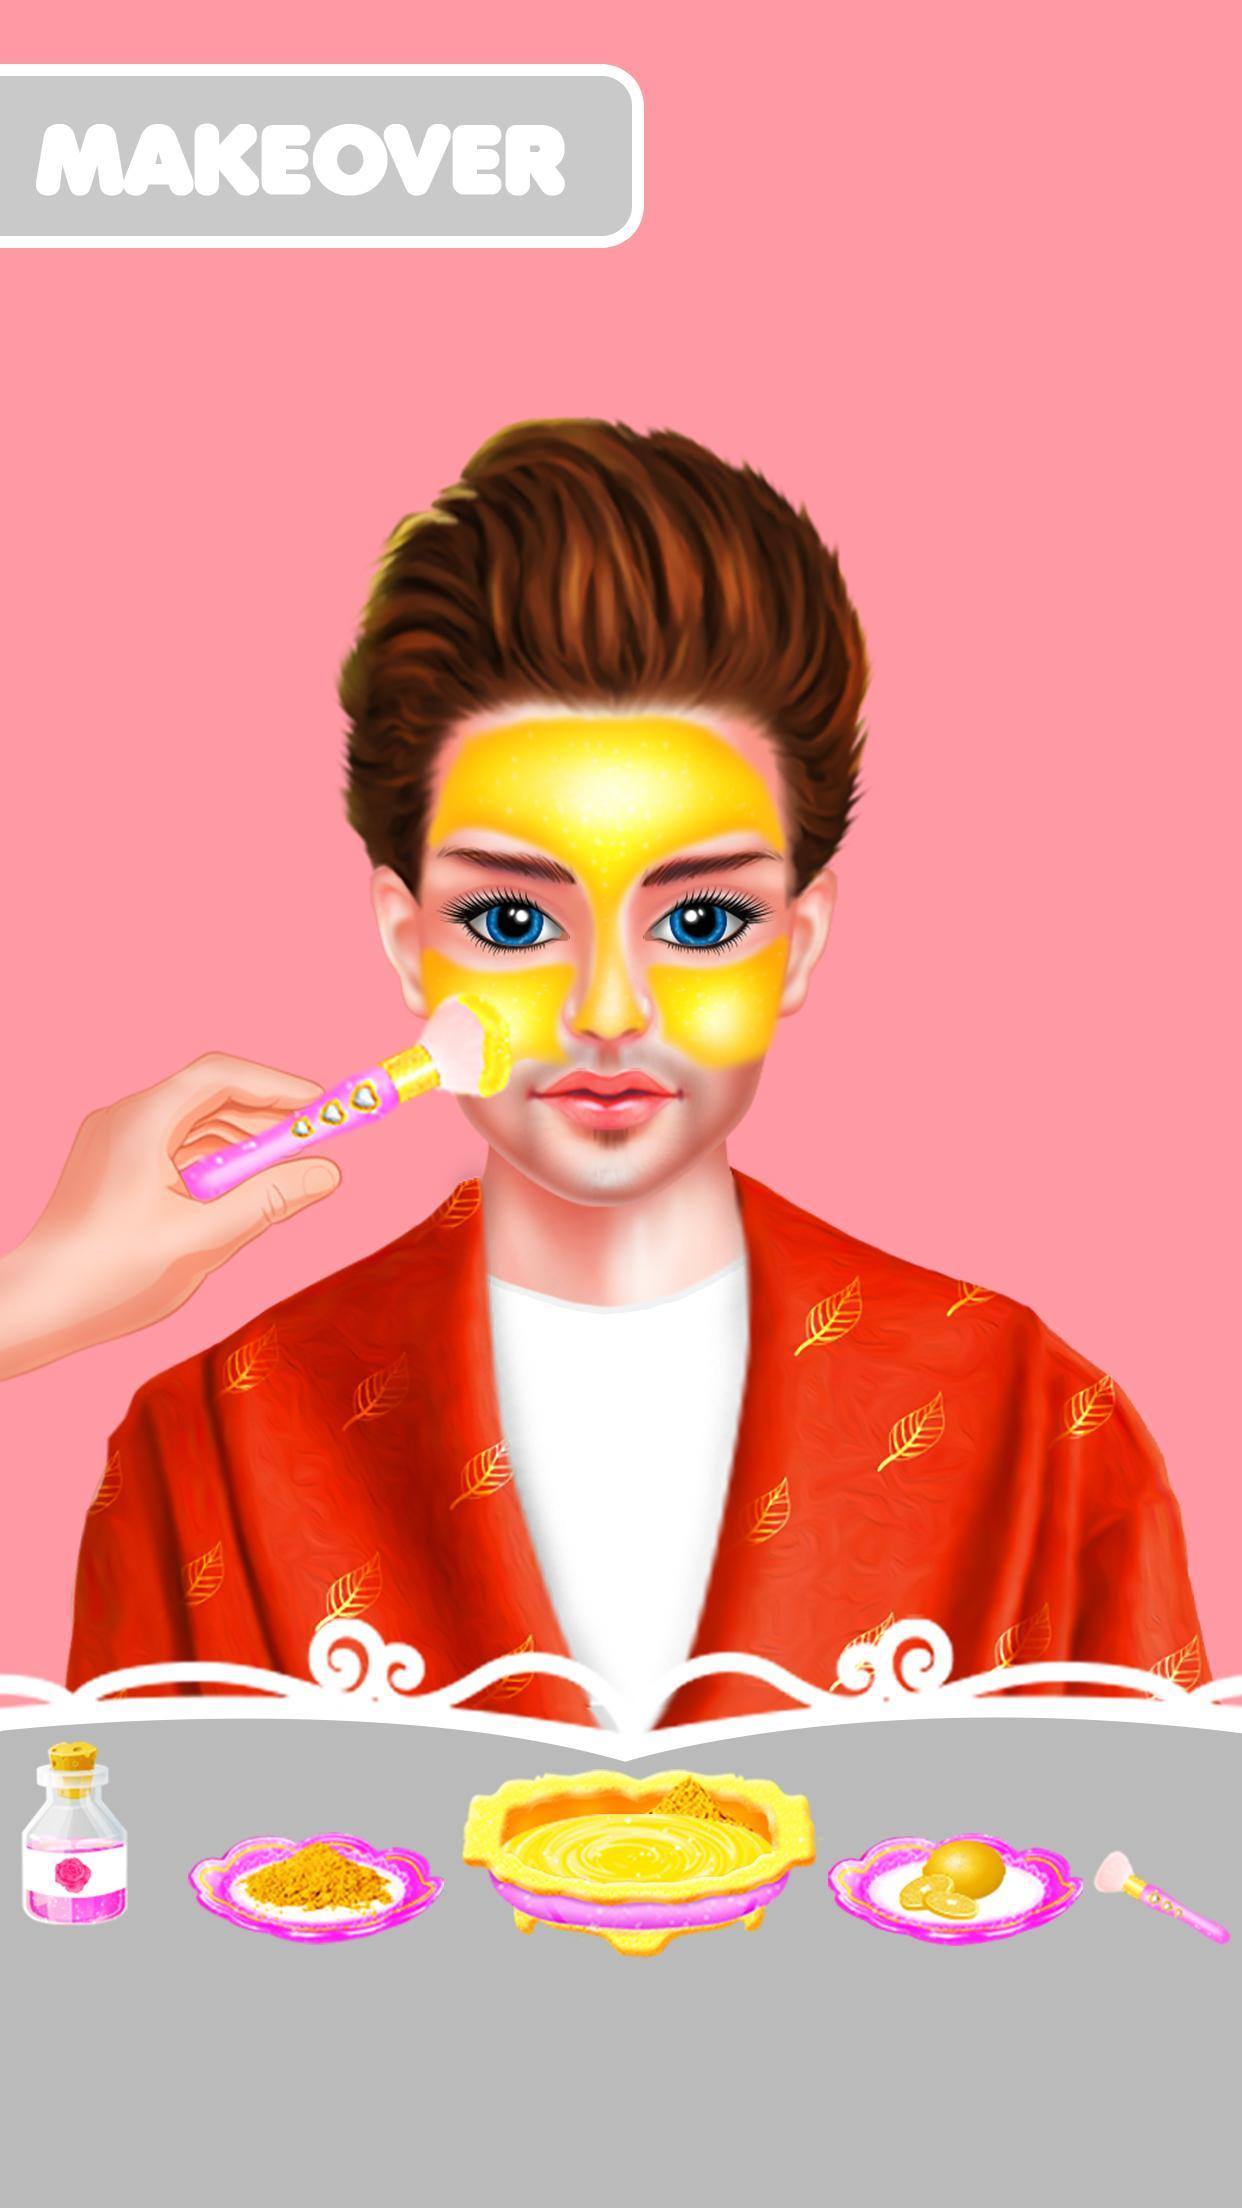 Celebrity fashion designer: Royal makeover Salon 1.8 Screenshot 5